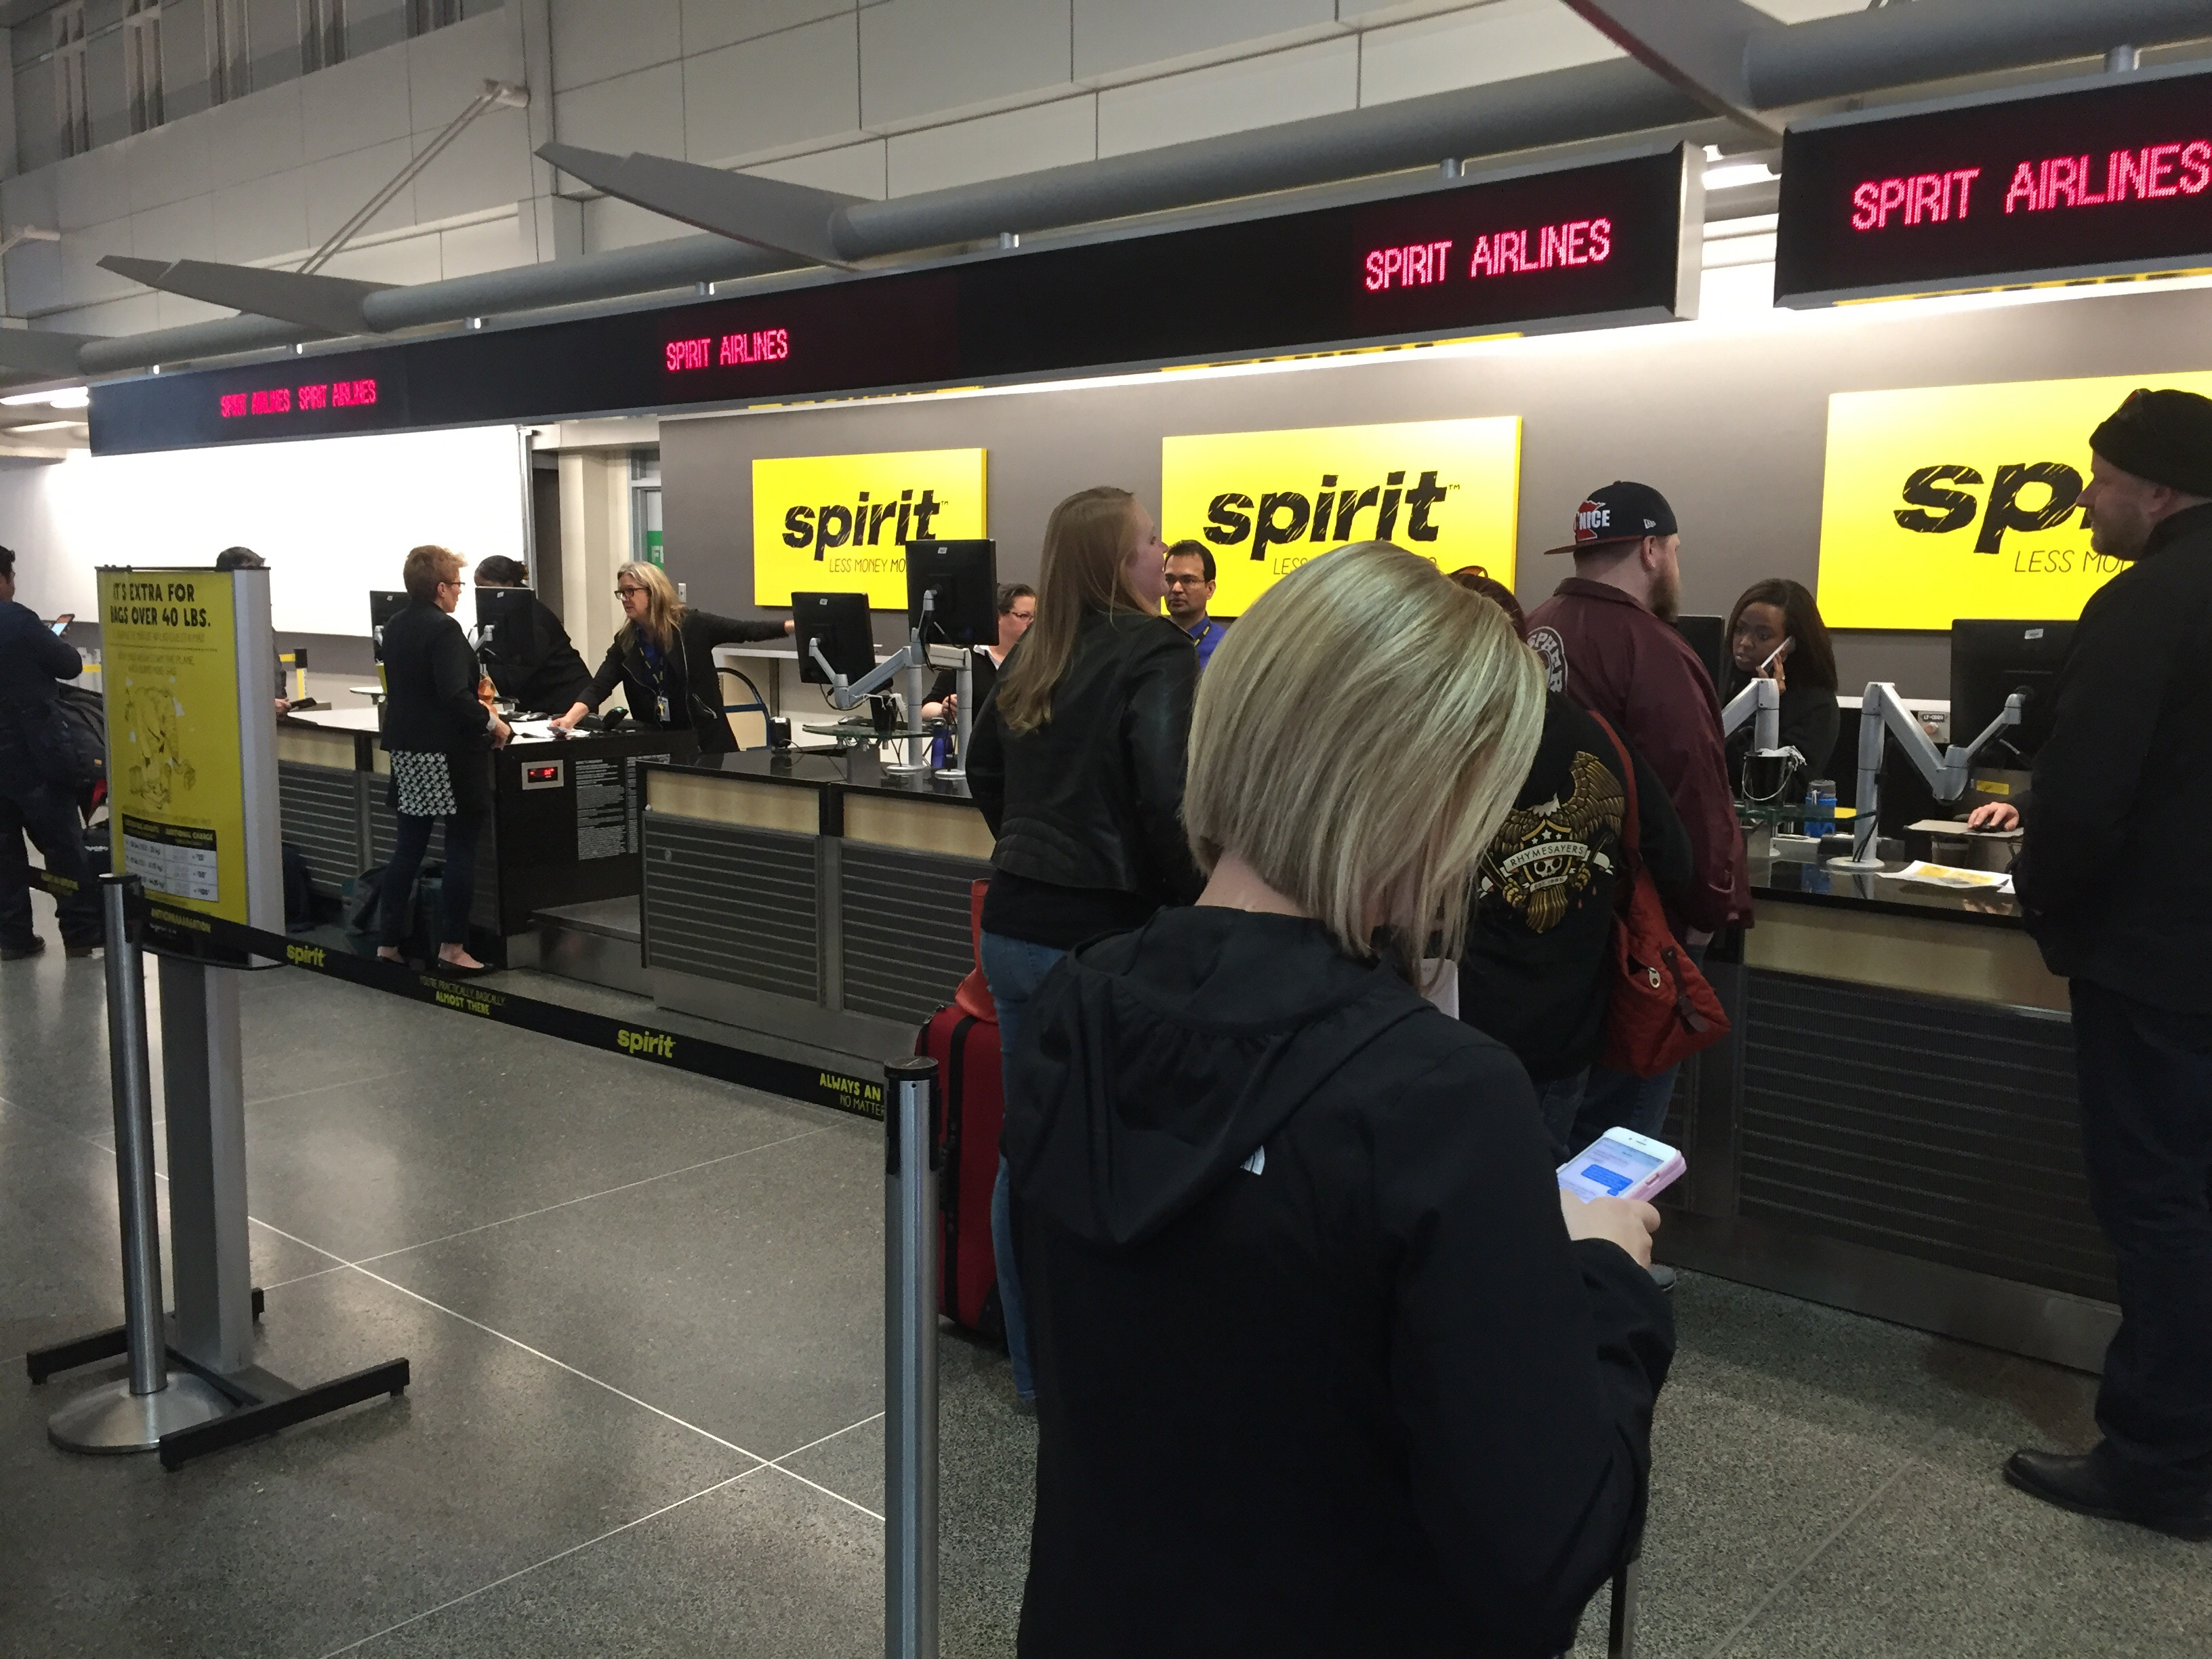 Spirit Airlines Check In >> Why I Will Never Again Fly Spirit Airlines Ryan S Musings